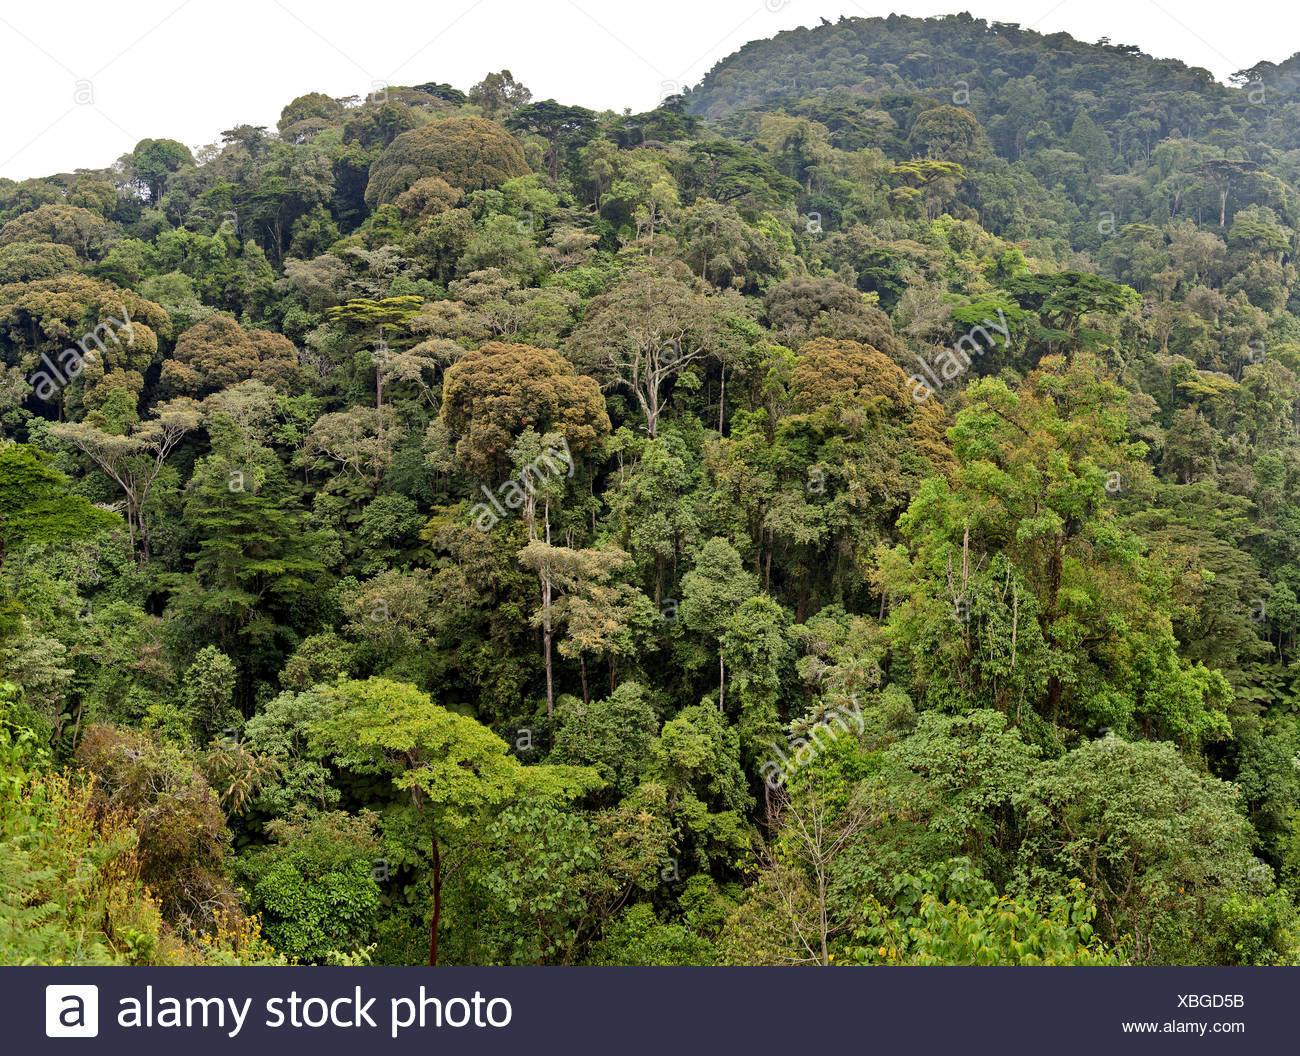 rainforest, Uganda, Bwindi Impenetrable National Park Stock Photo